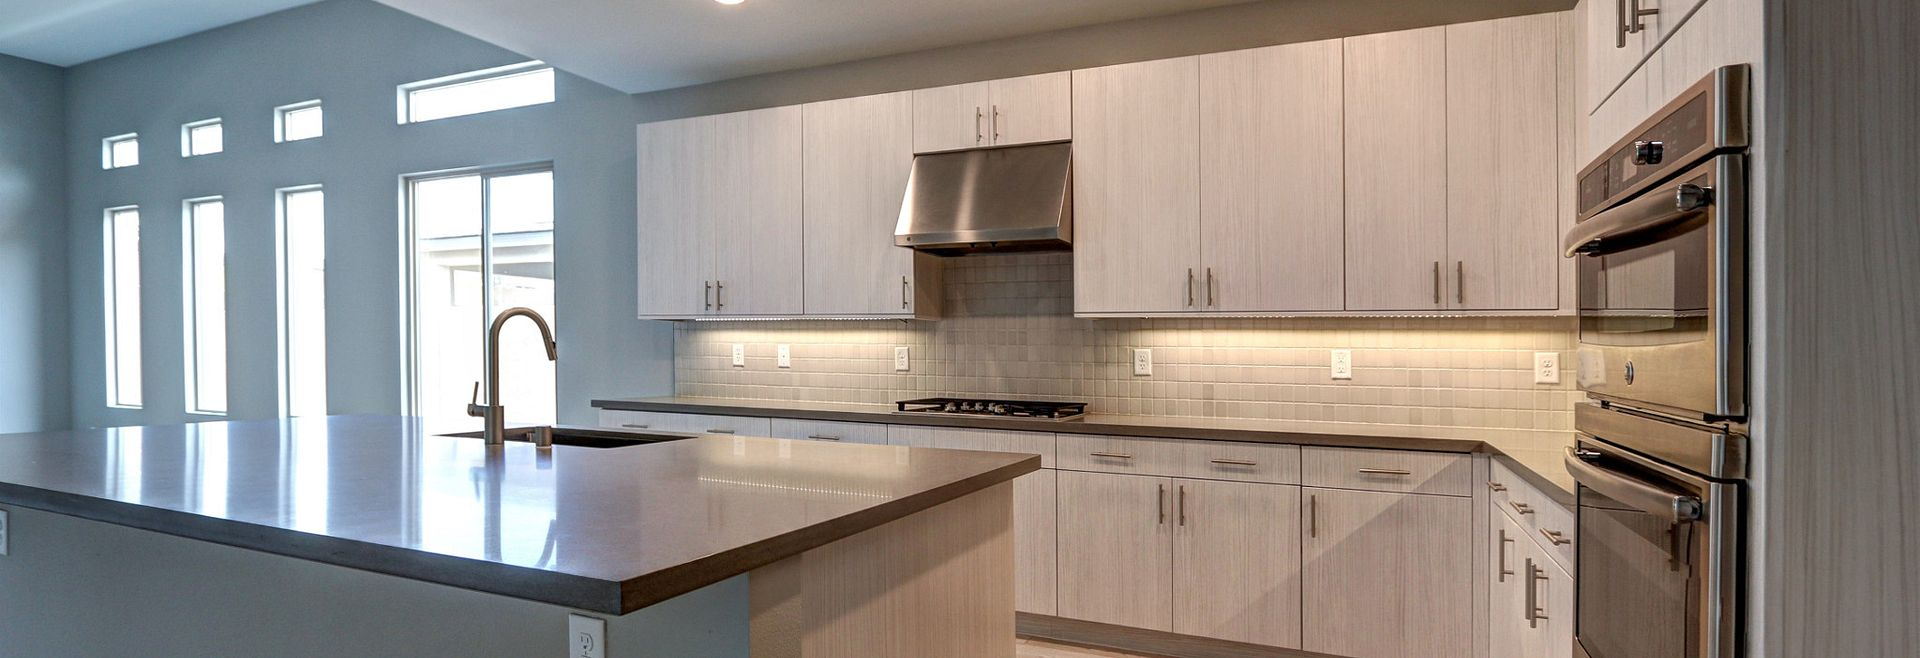 Trilogy Summerlin Explore Kitchen